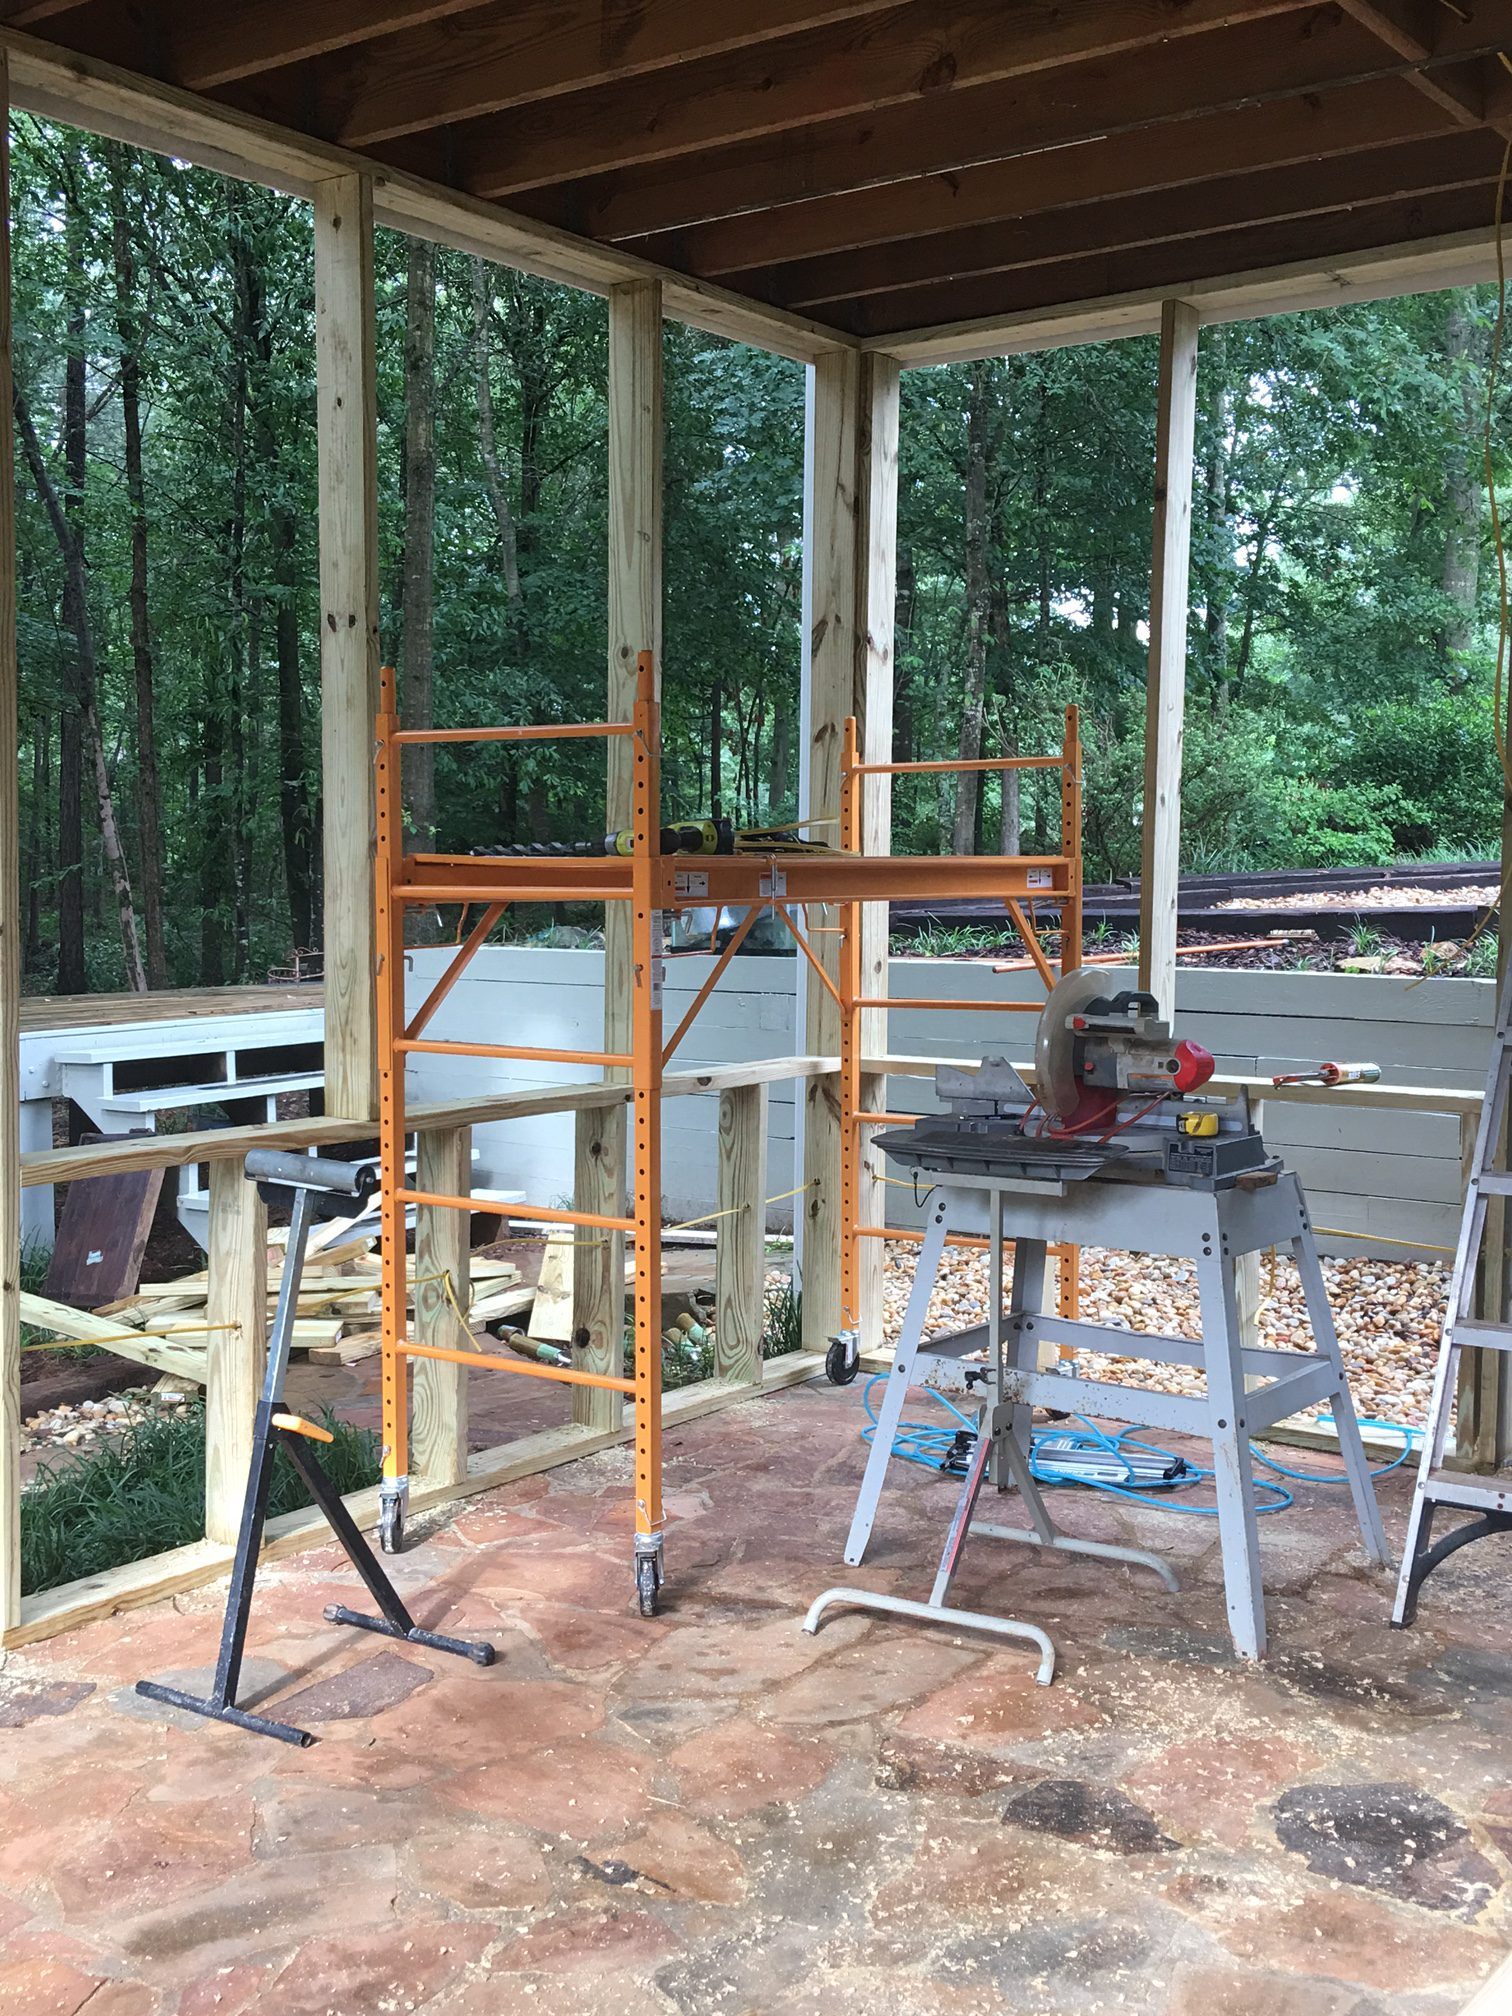 The construction phase of building a Screen Porch